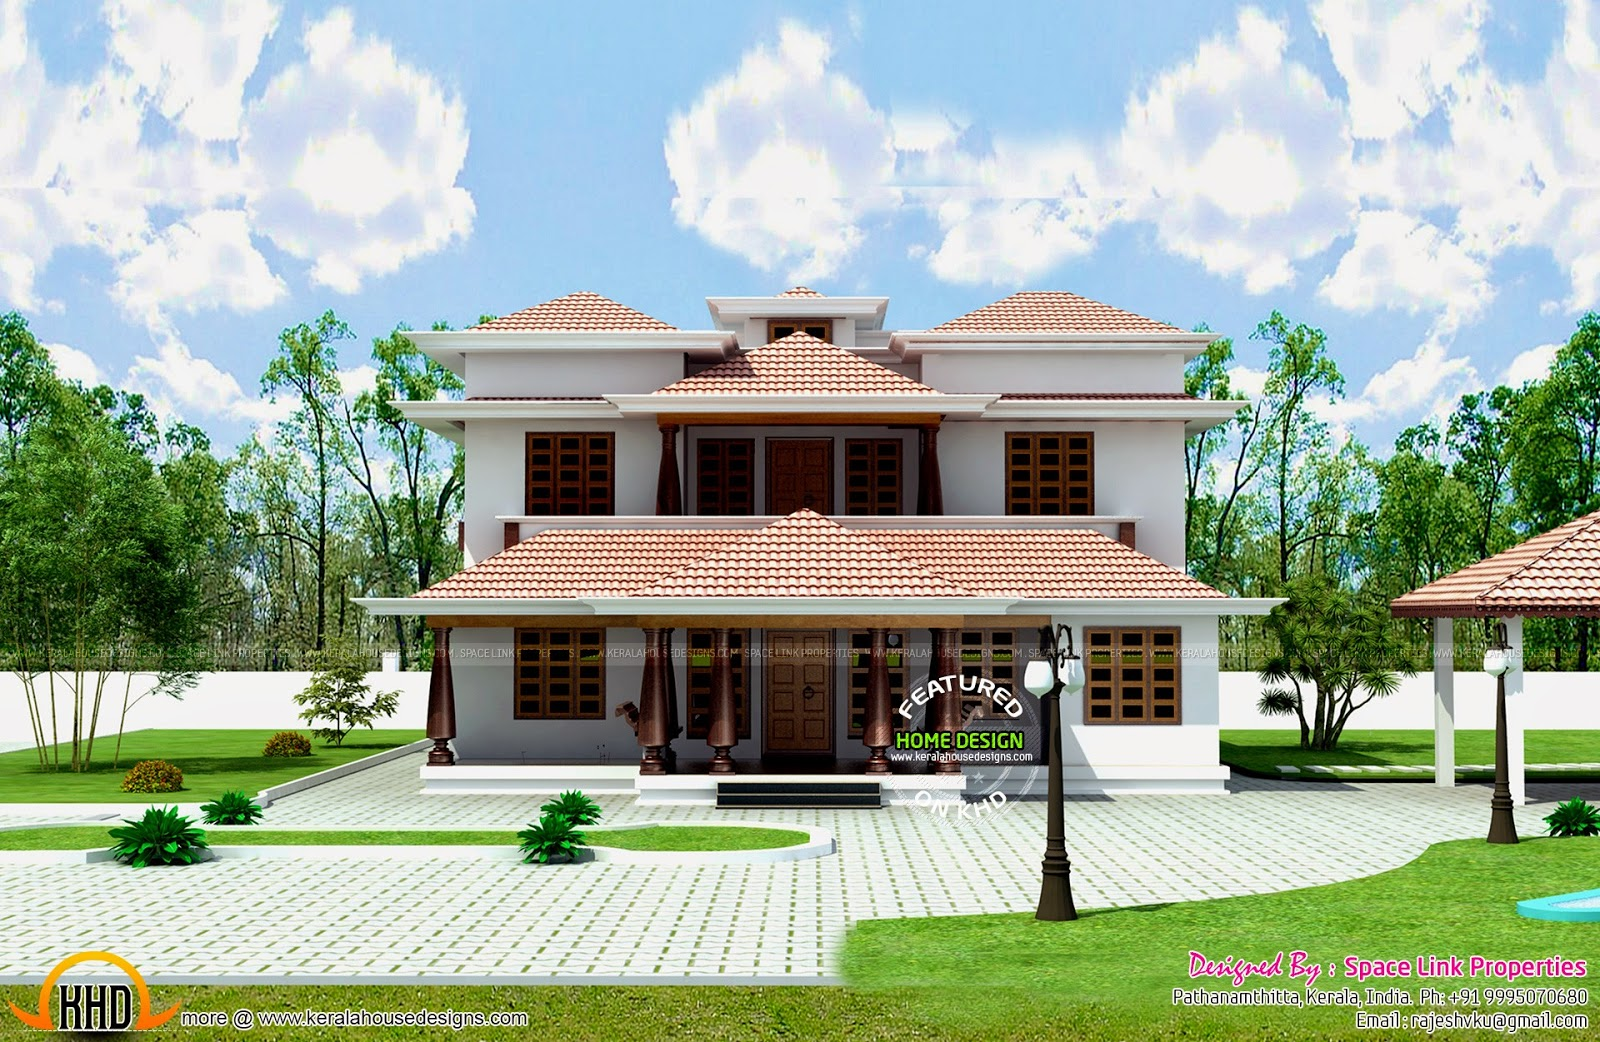 Typical kerala traditional house kerala home design and for Kerala house photos